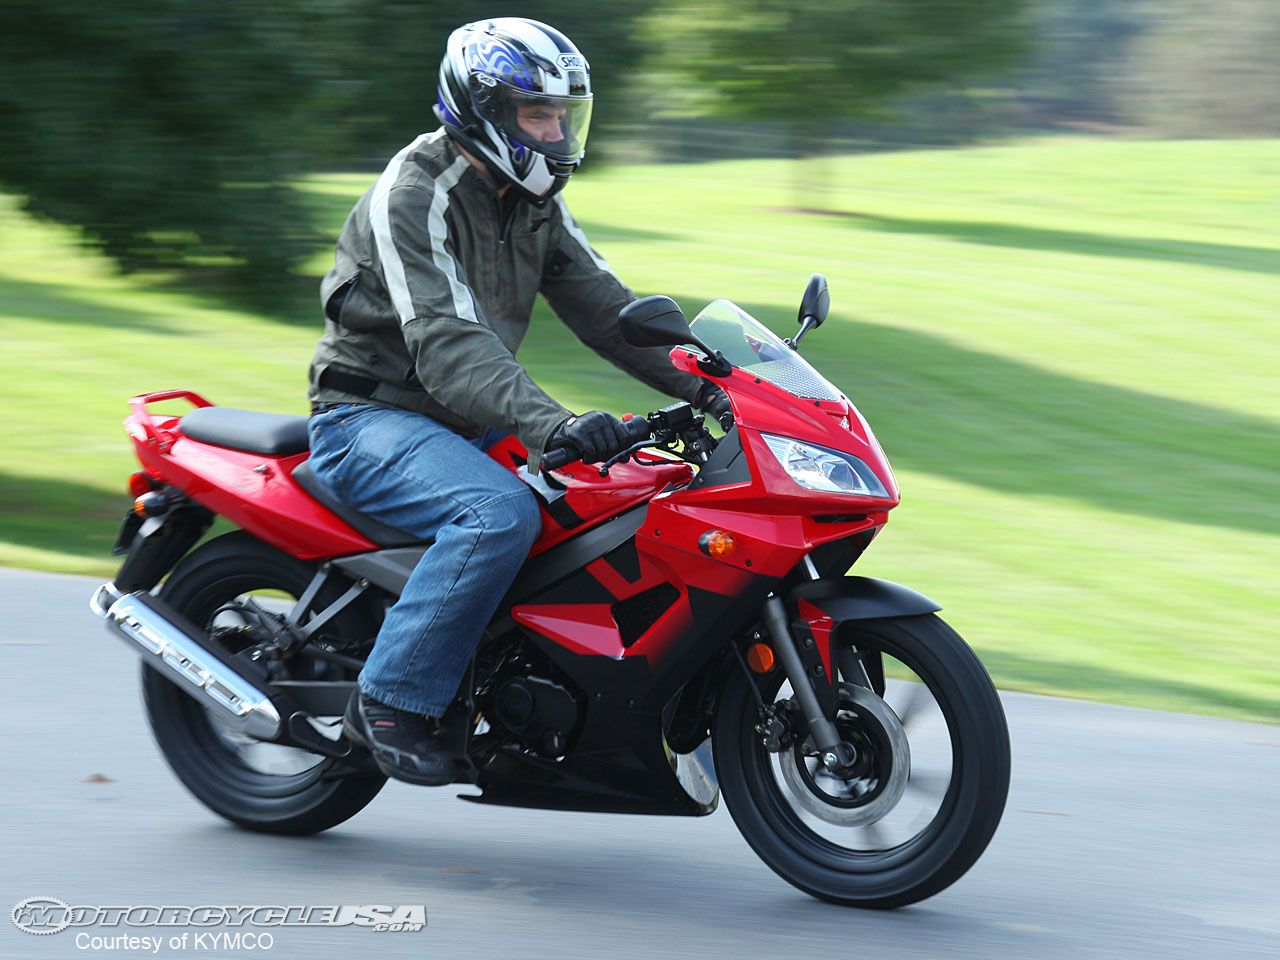 2010 KYMCO Quannon 150 First Ride